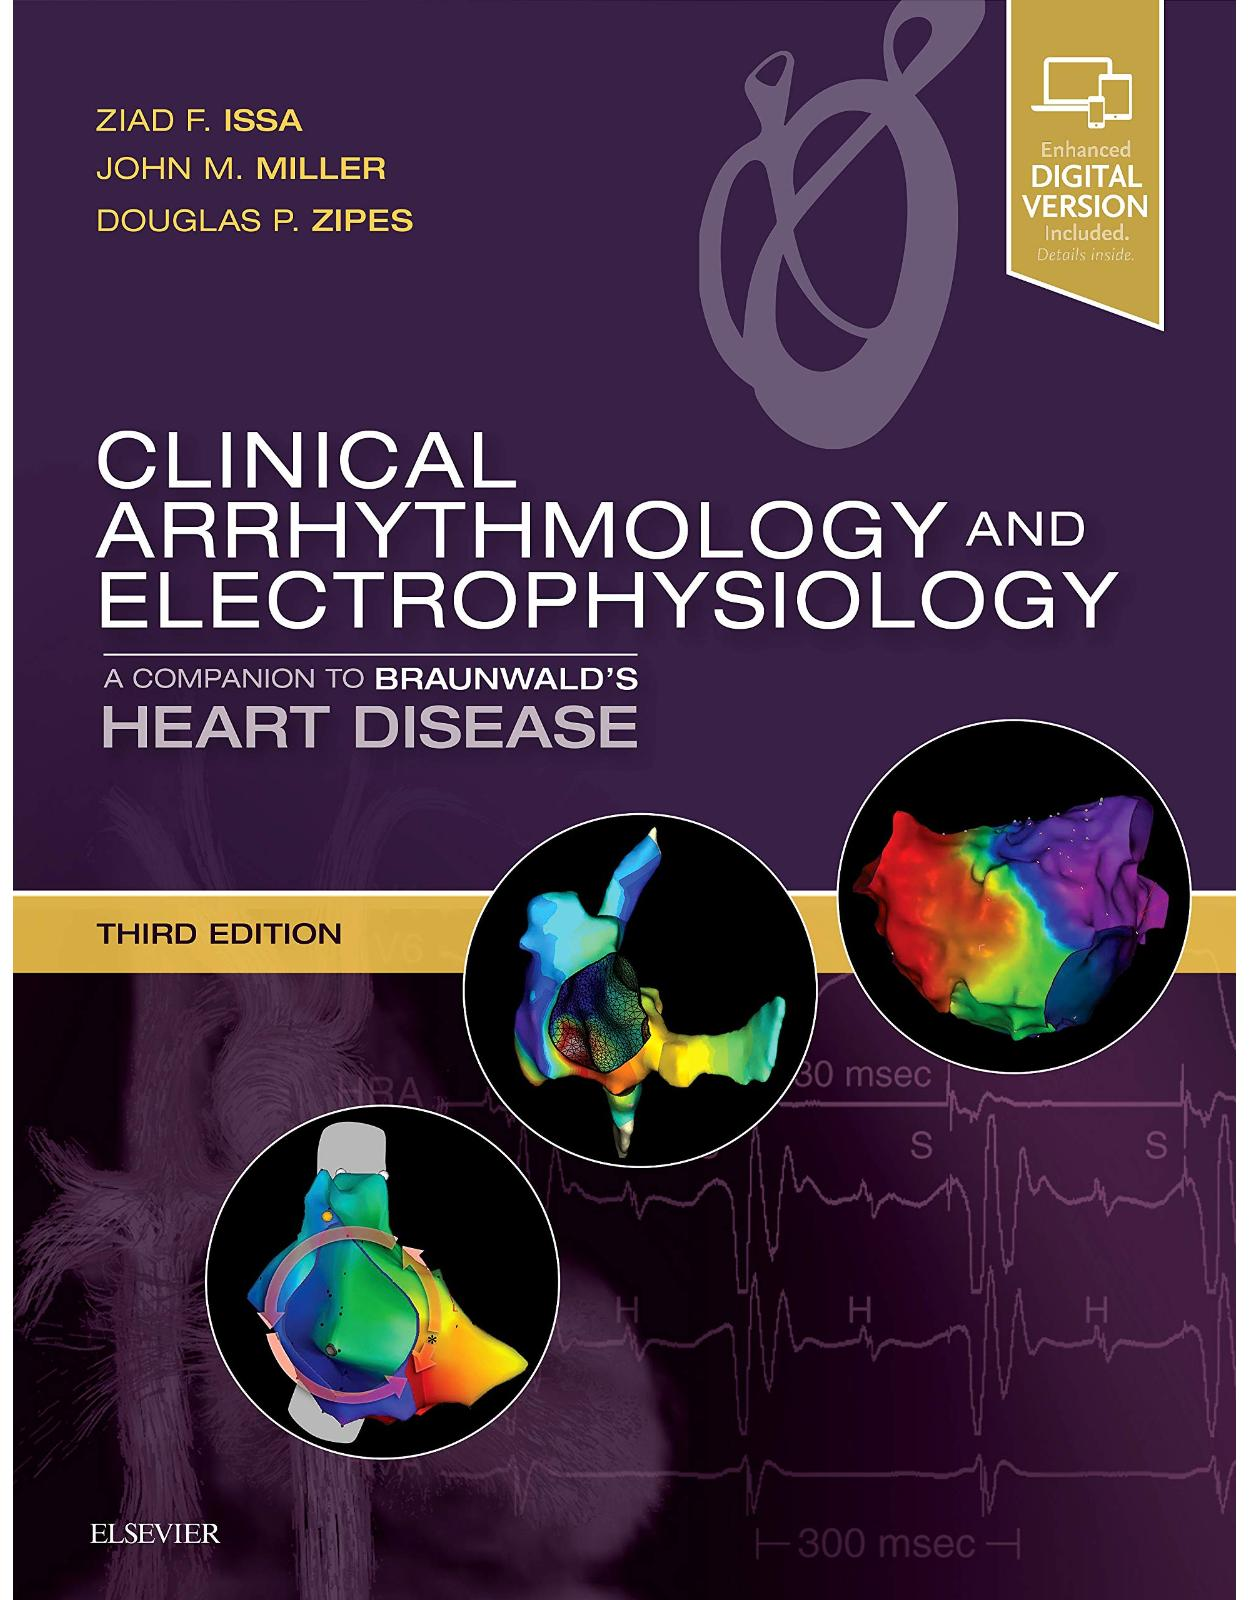 Clinical Arrhythmology and Electrophysiology: A Companion to Braunwald's Heart Disease, 3e